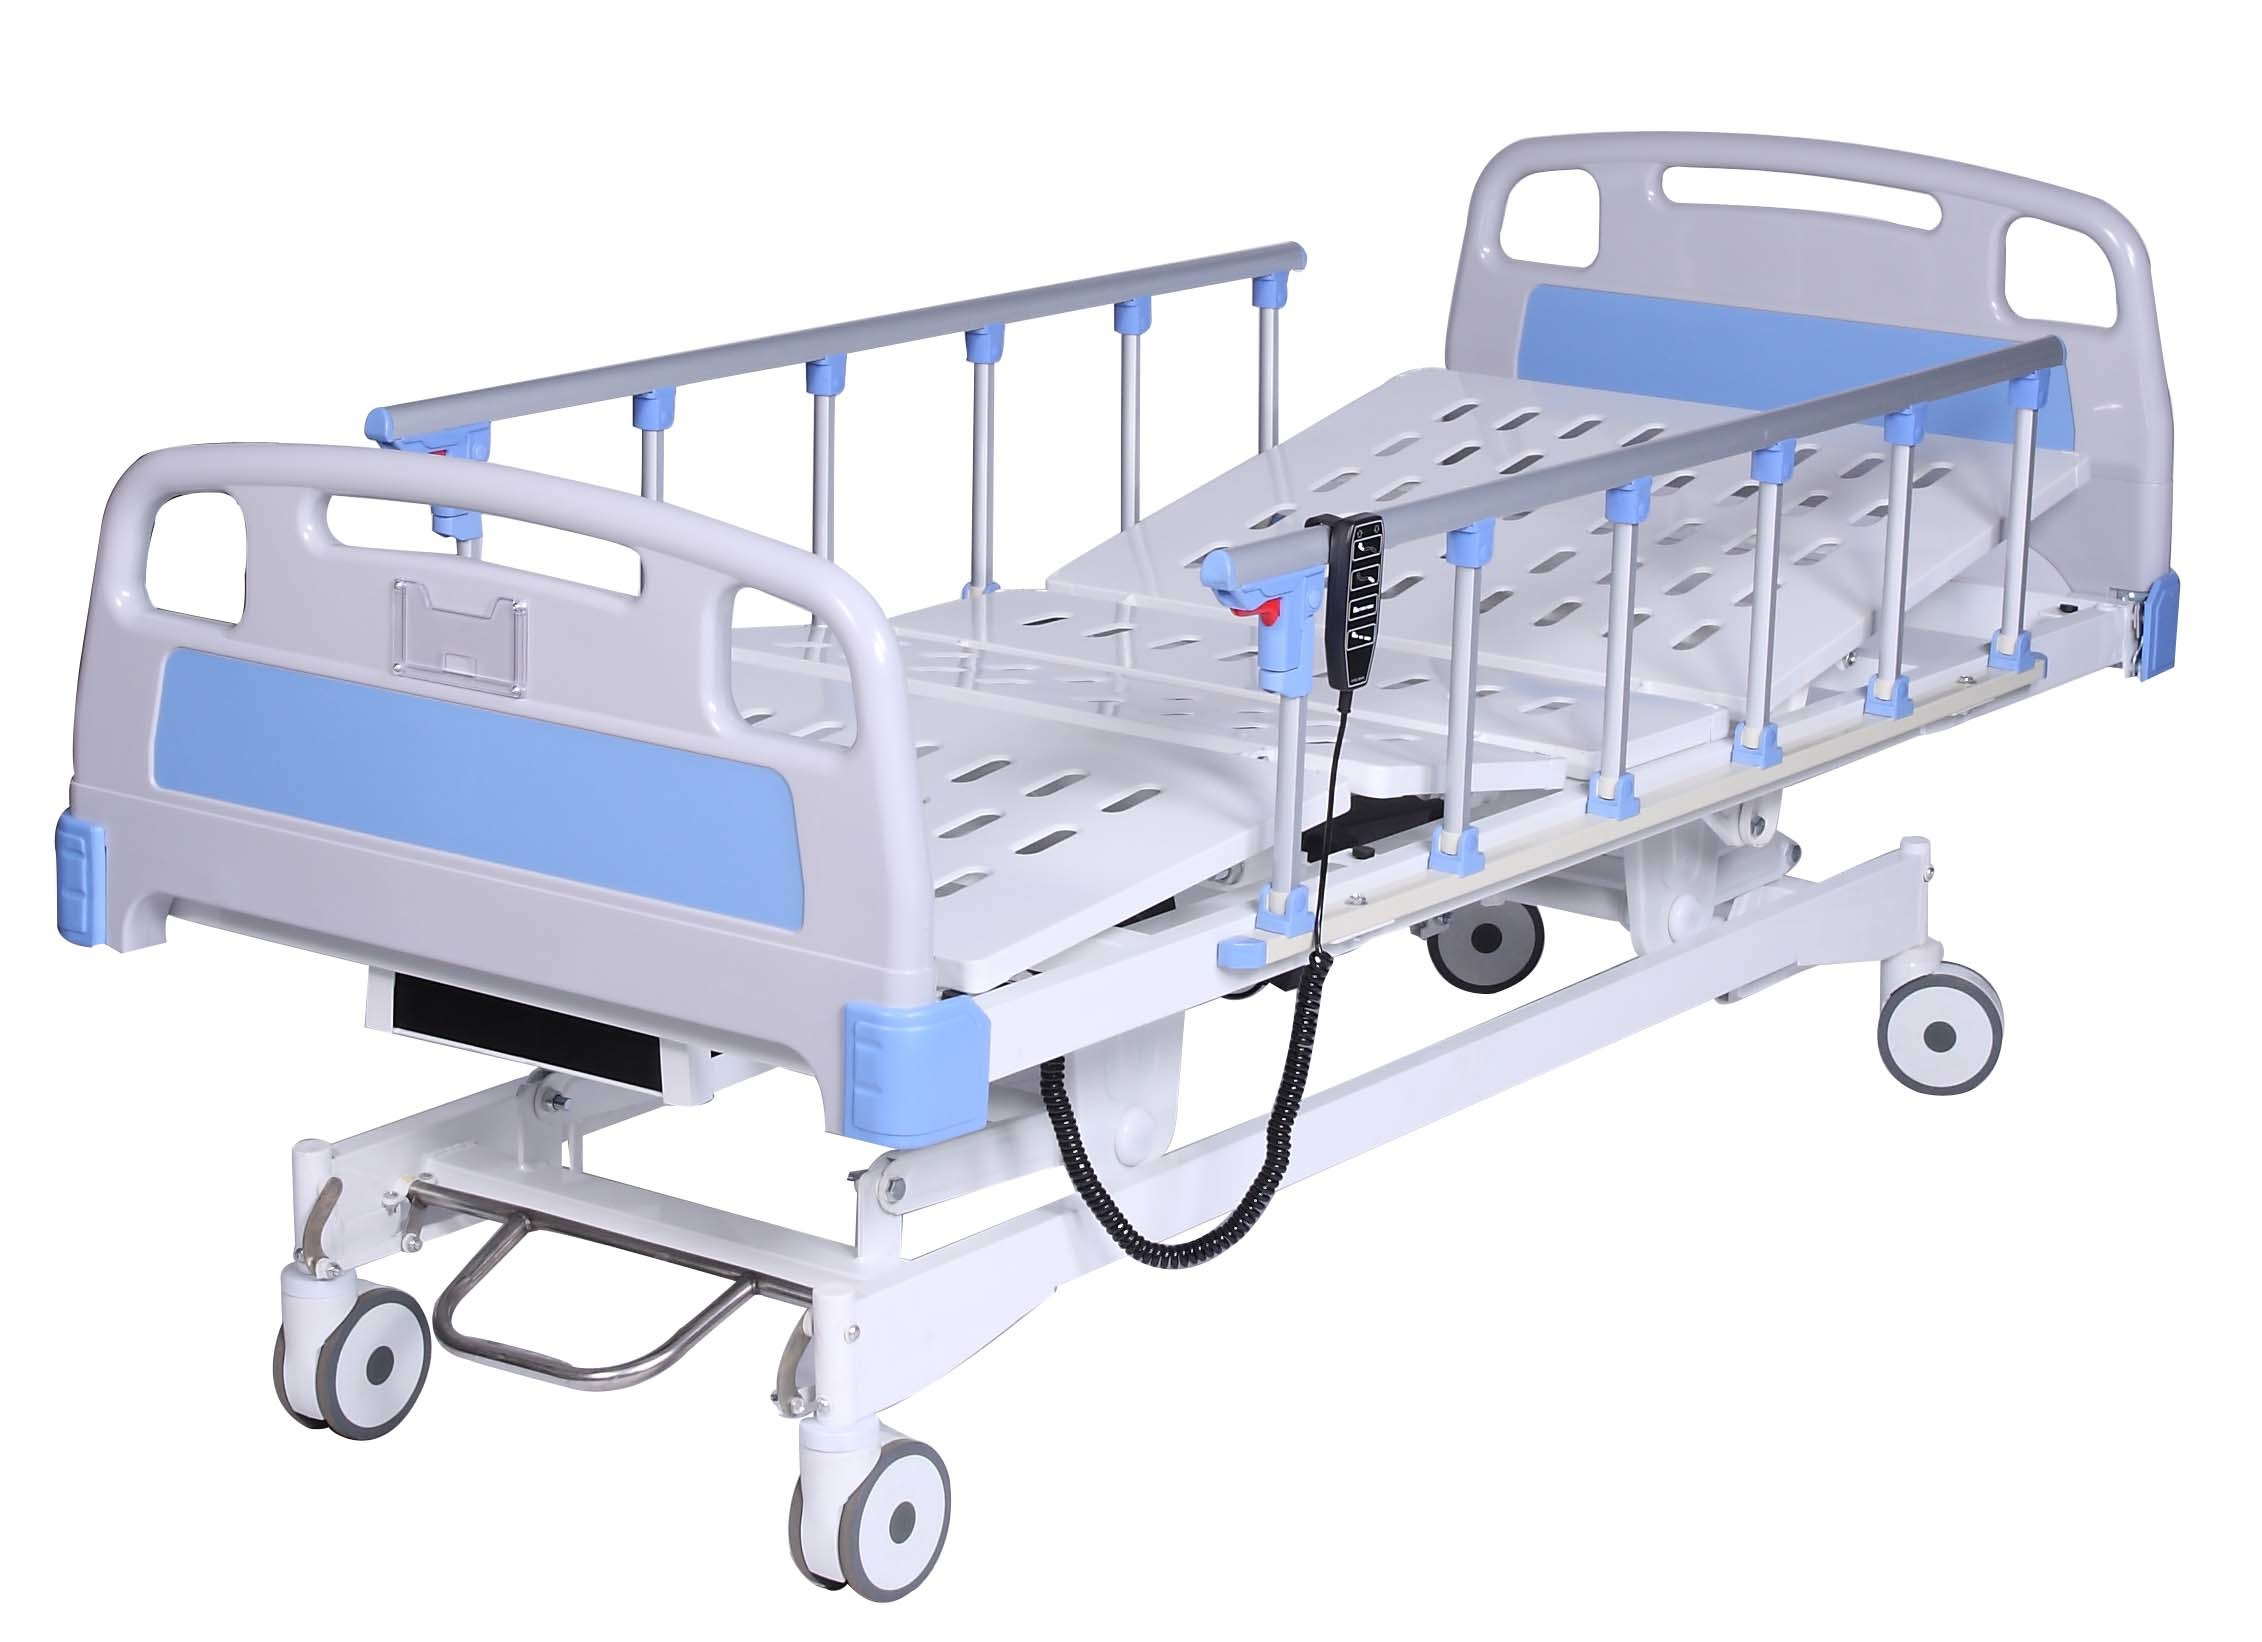 Electric Beds Medical : China dl f electric medical bed functions